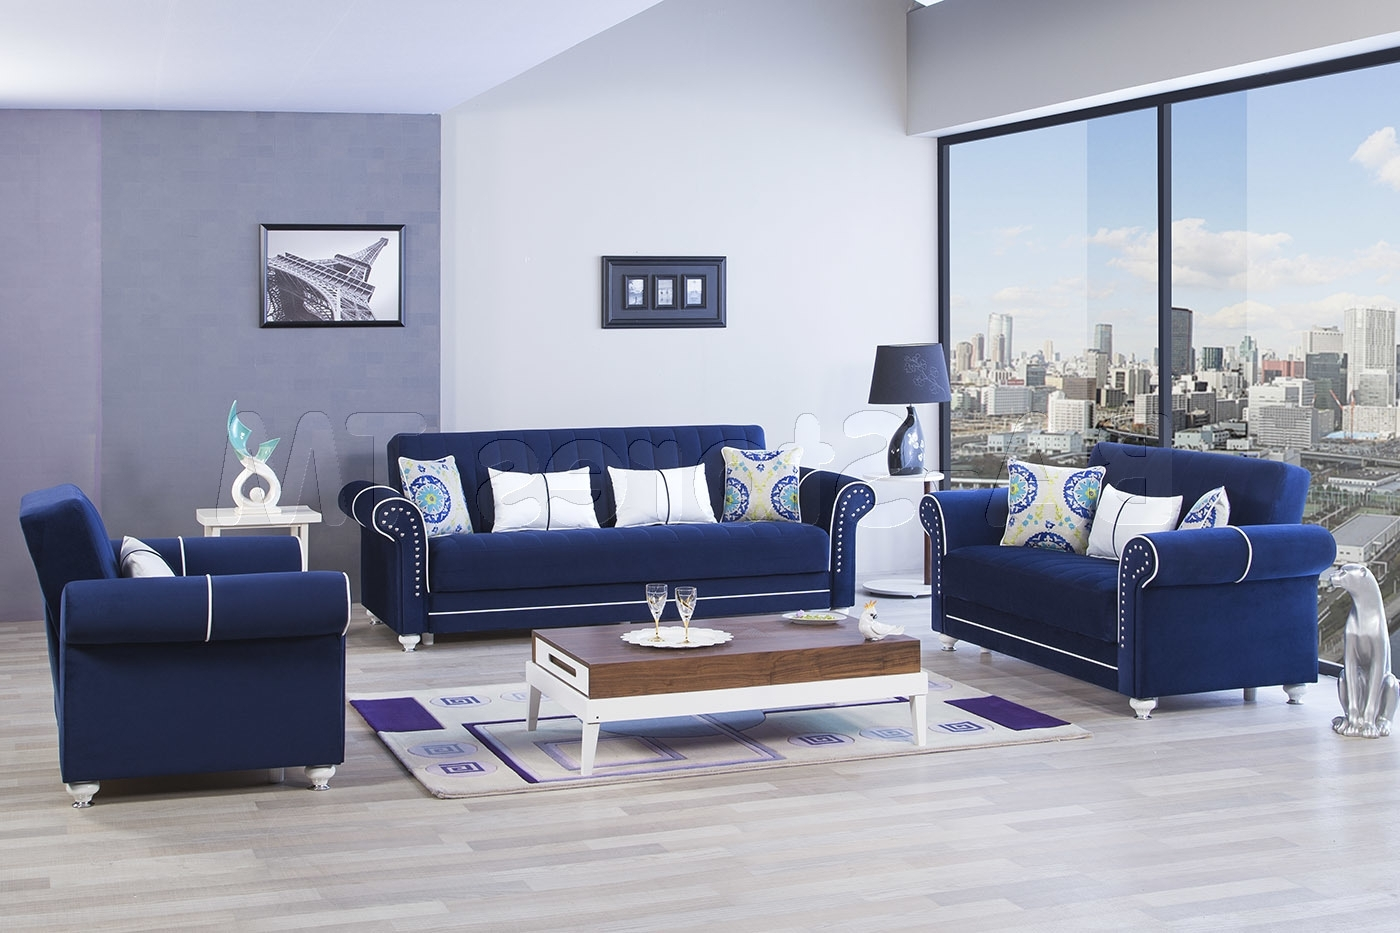 Best And Newest Sale: $249494 Royal Home Sofa Set Riva Dark Blue (3pc) Sofa With Regard To Dark Blue Sofas (Gallery 19 of 20)